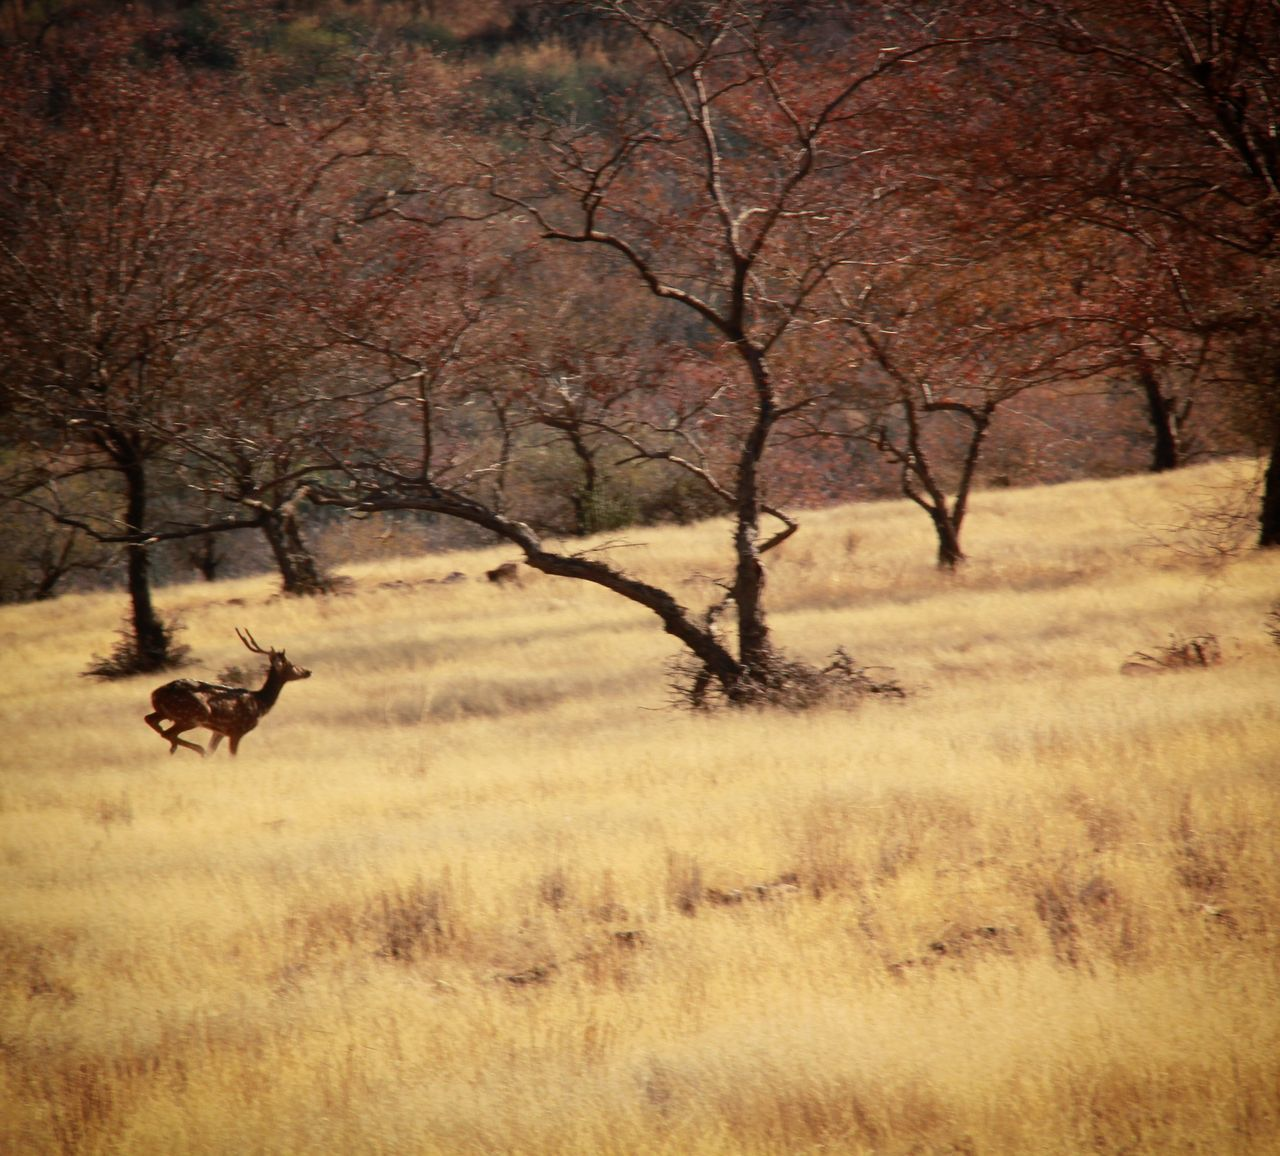 Indian Ghazal JungleExperience Jungle Safari Ranthambore National Park Wilderness Outdoors Animals In The Wild Day Sky Grass No People